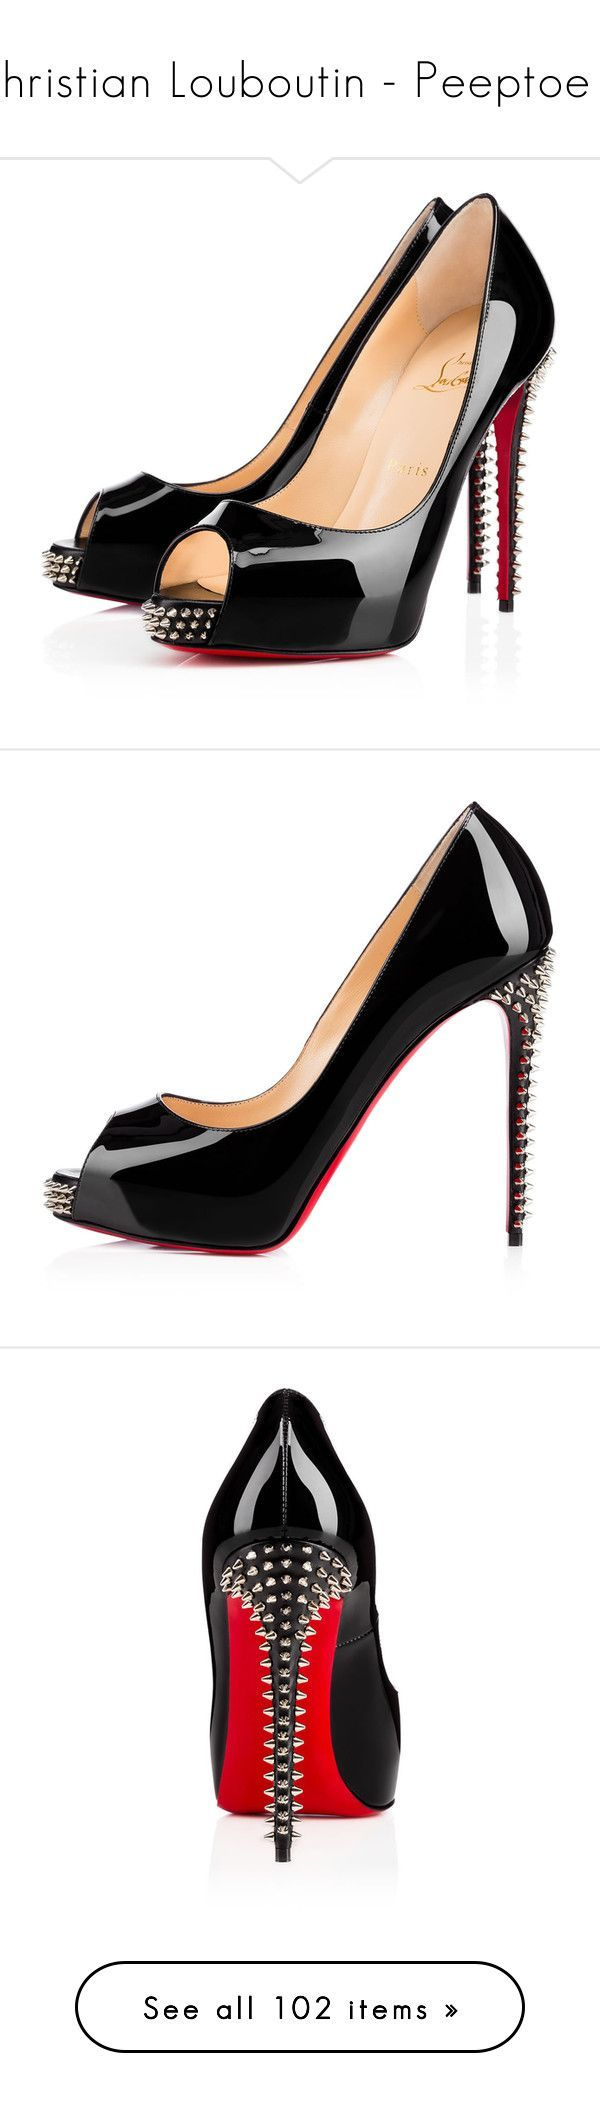 Christian Louboutin - Peeptoe 4 by enchantedxox ❤ liked on Polyvore featuring shoes, christian louboutin, heels, louboutin, black, black high heel shoes, spike shoes, summer shoes, patent leather shoes and spiked high heel shoes #stilettoheelsmistress